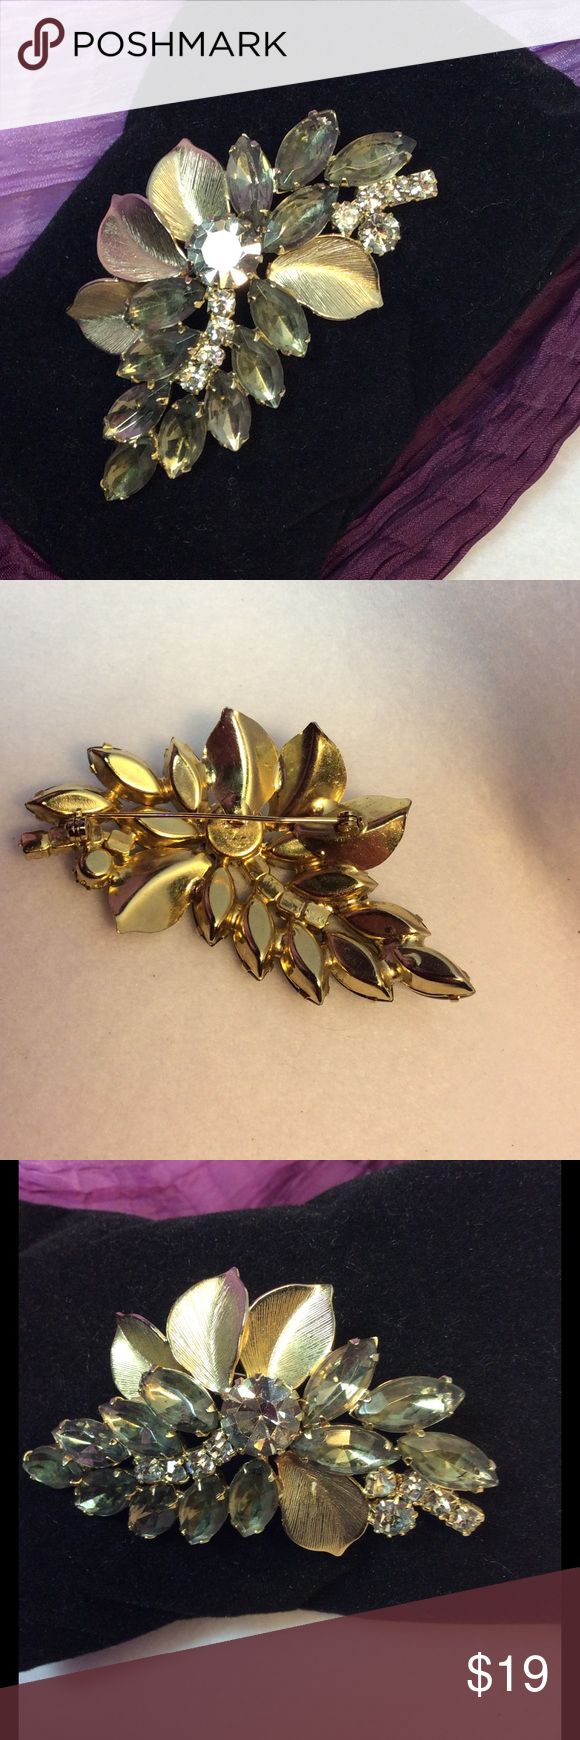 Goldtone Brooch with Clear and Smoky Stones Beautiful Vintage Brooch in Sparkling, yet neutral colors!  Would work with gold or silver jewelry!  Excellent size and shape for shoulder, collar, scarf, coat, and purse!  EUC.  Well taken care of, no defects or missing stones. Jewelry Brooches